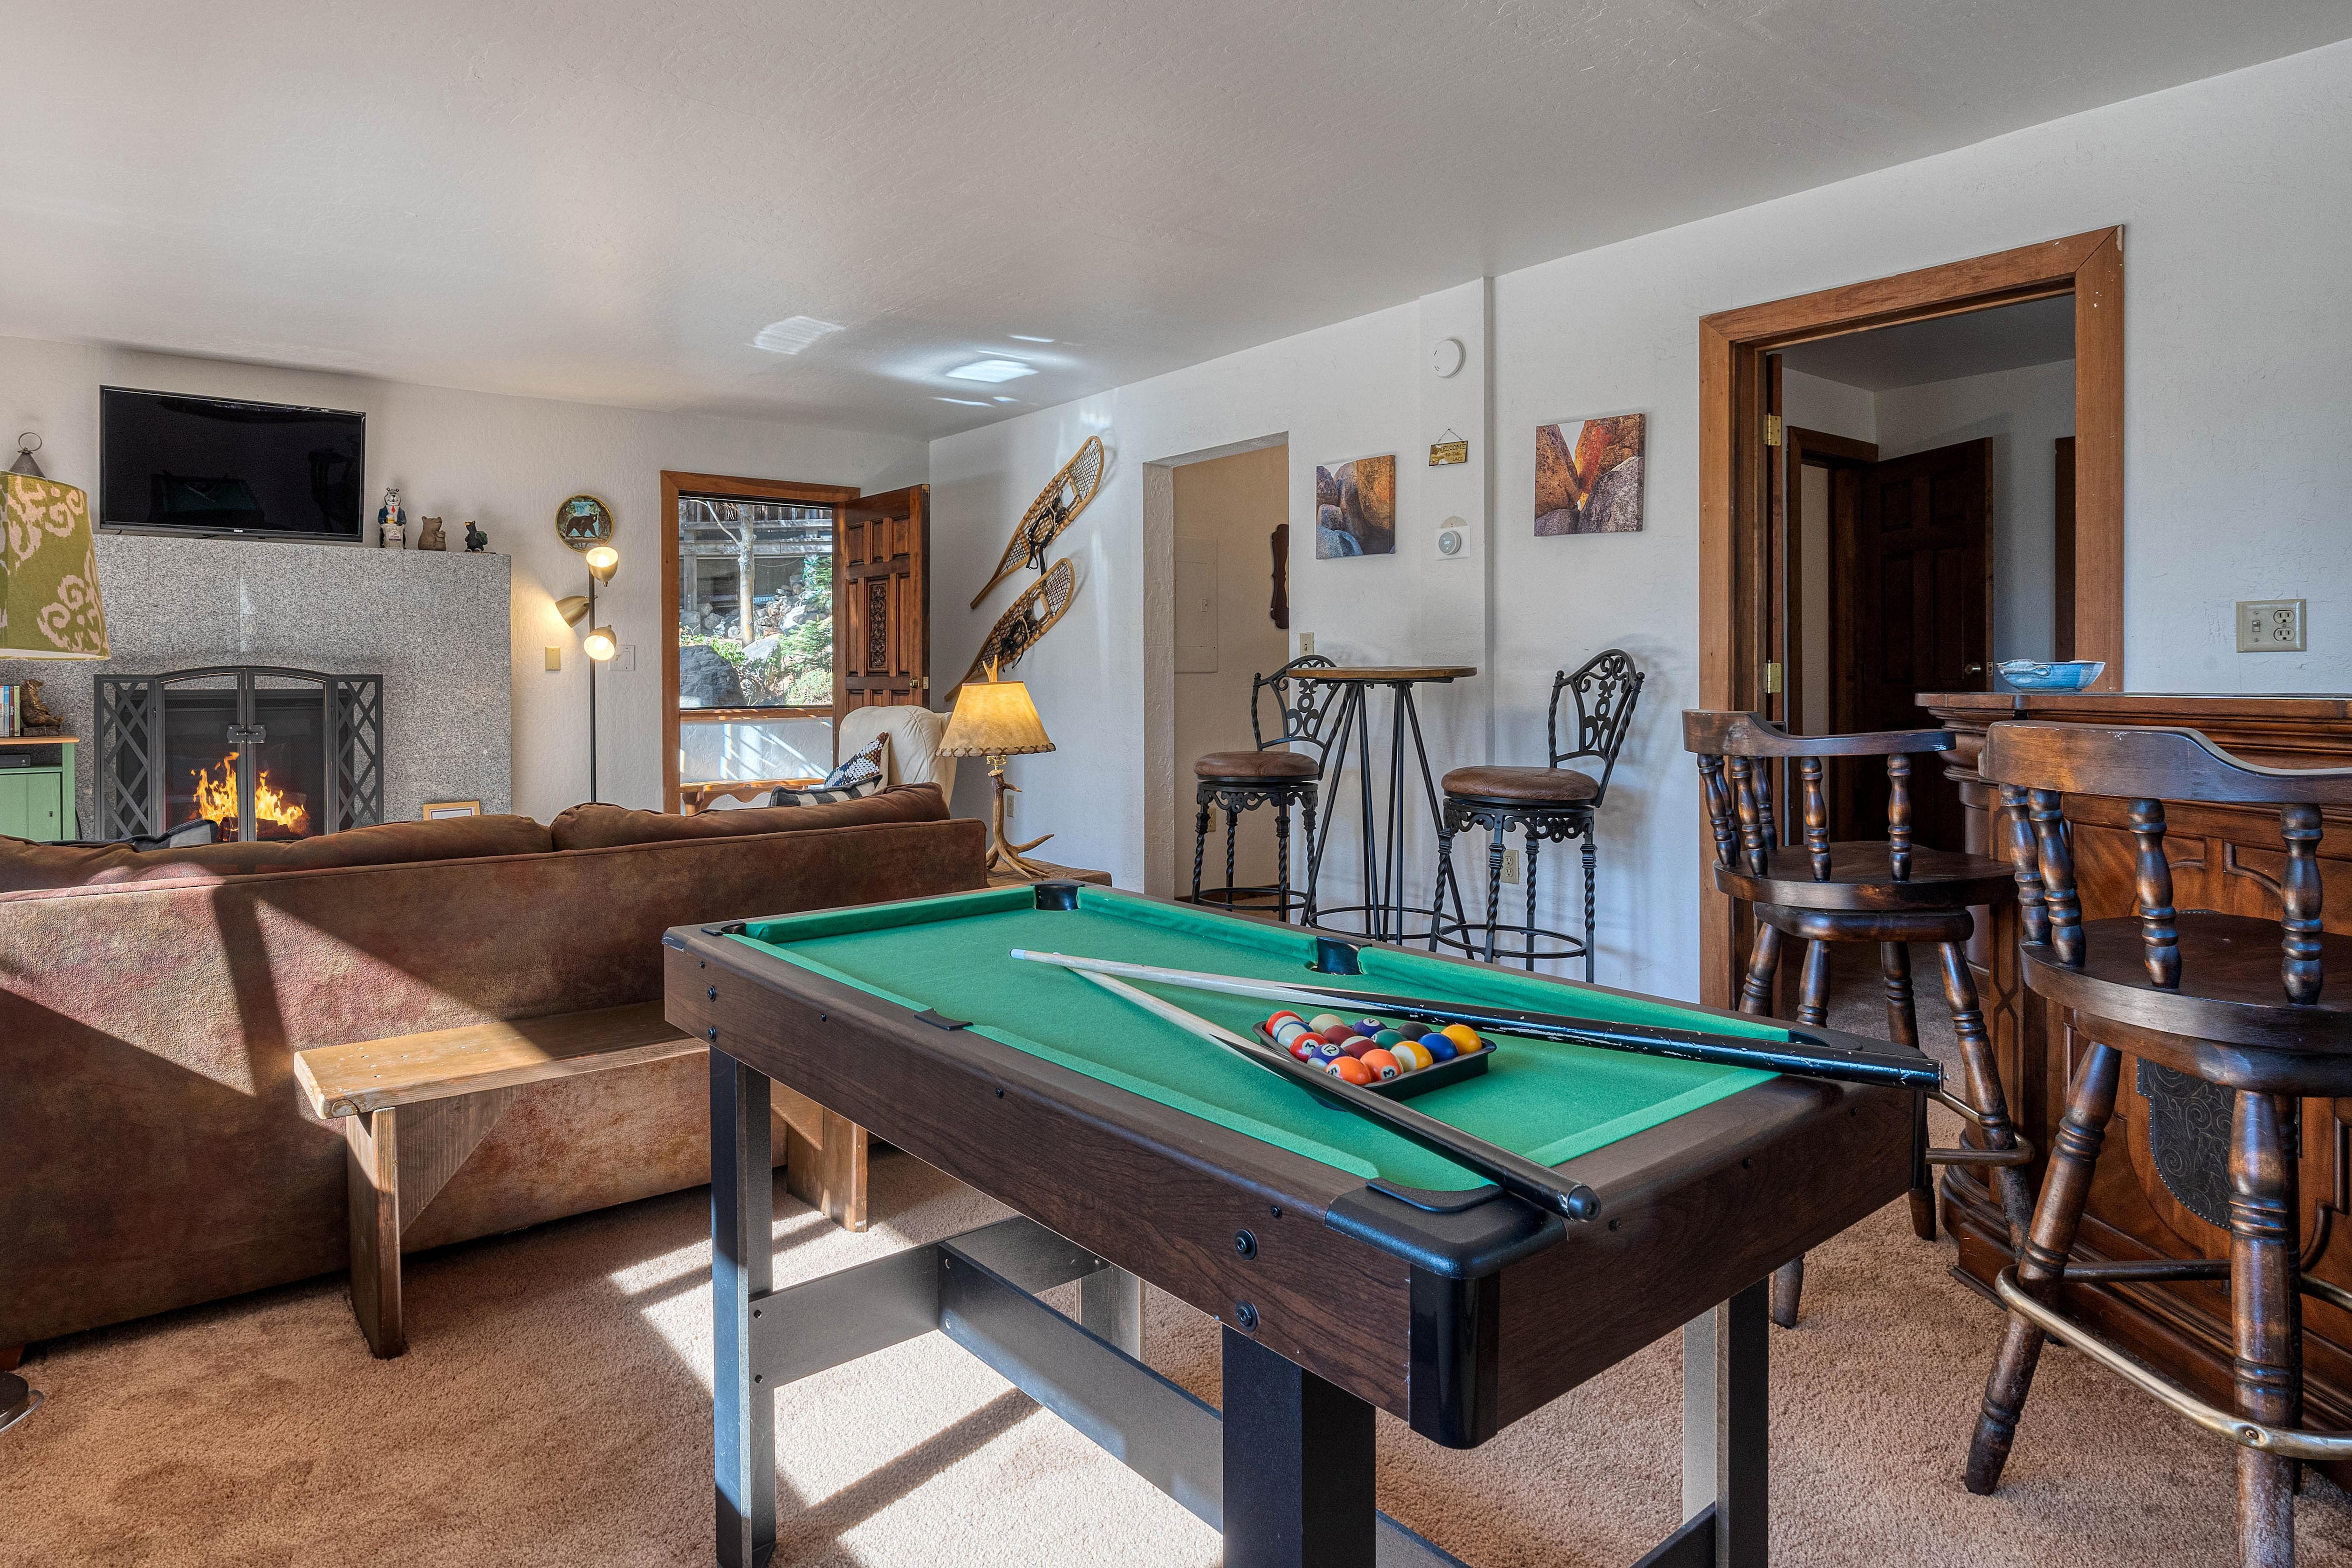 The master lounge features a mini pool table and a wet bar.